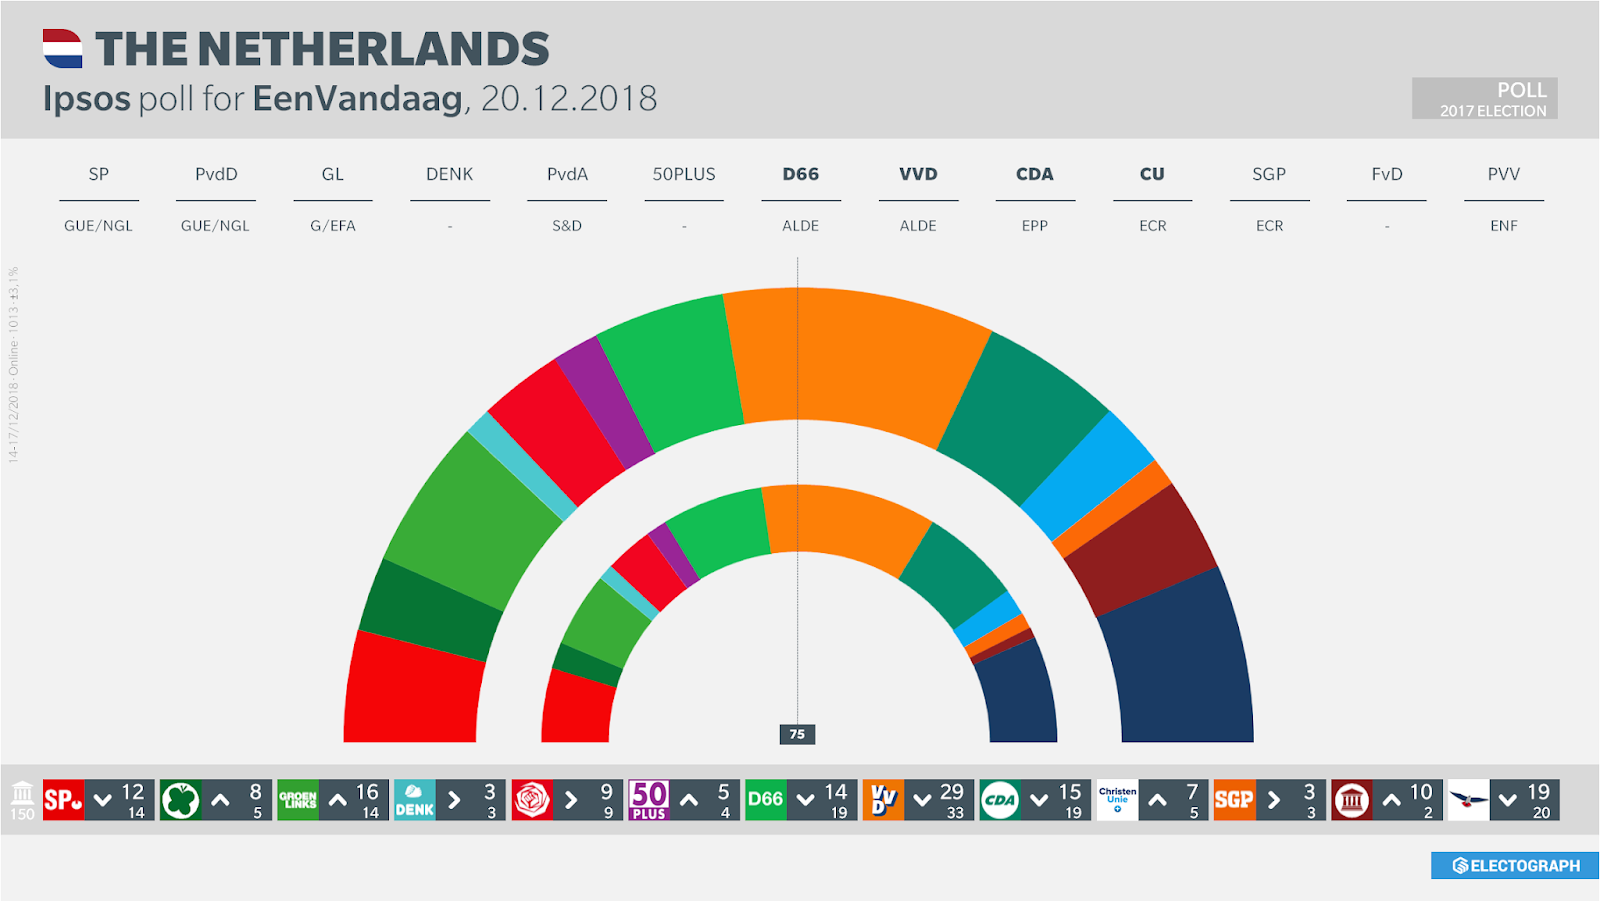 THE NETHERLANDS: Ipsos poll chart, 20 December 2018